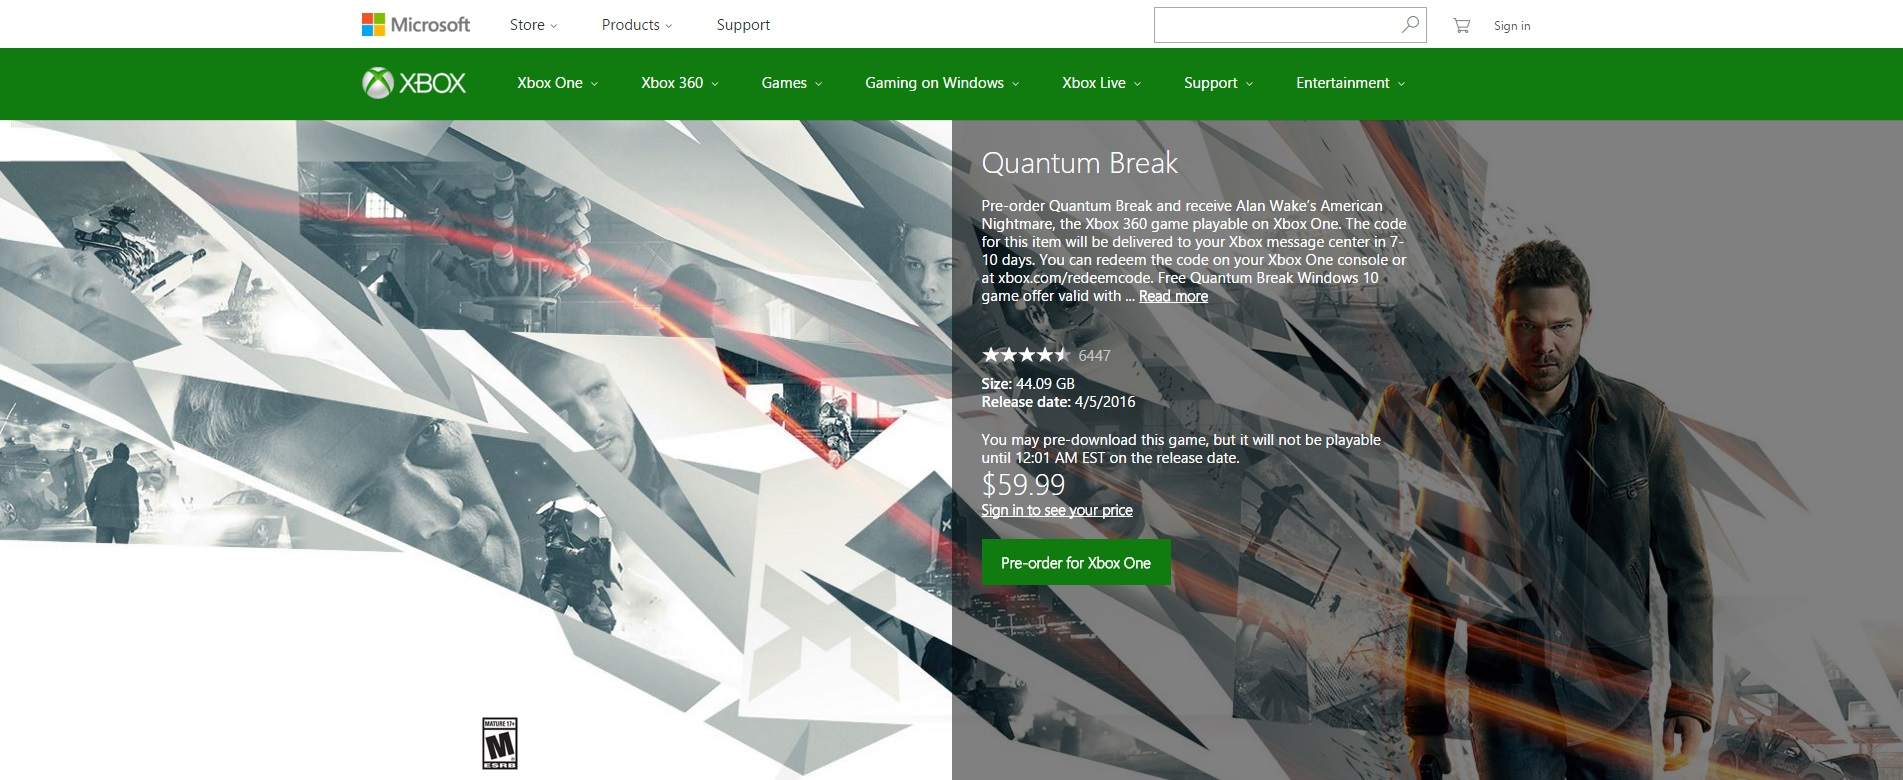 nat_games_quantum_break